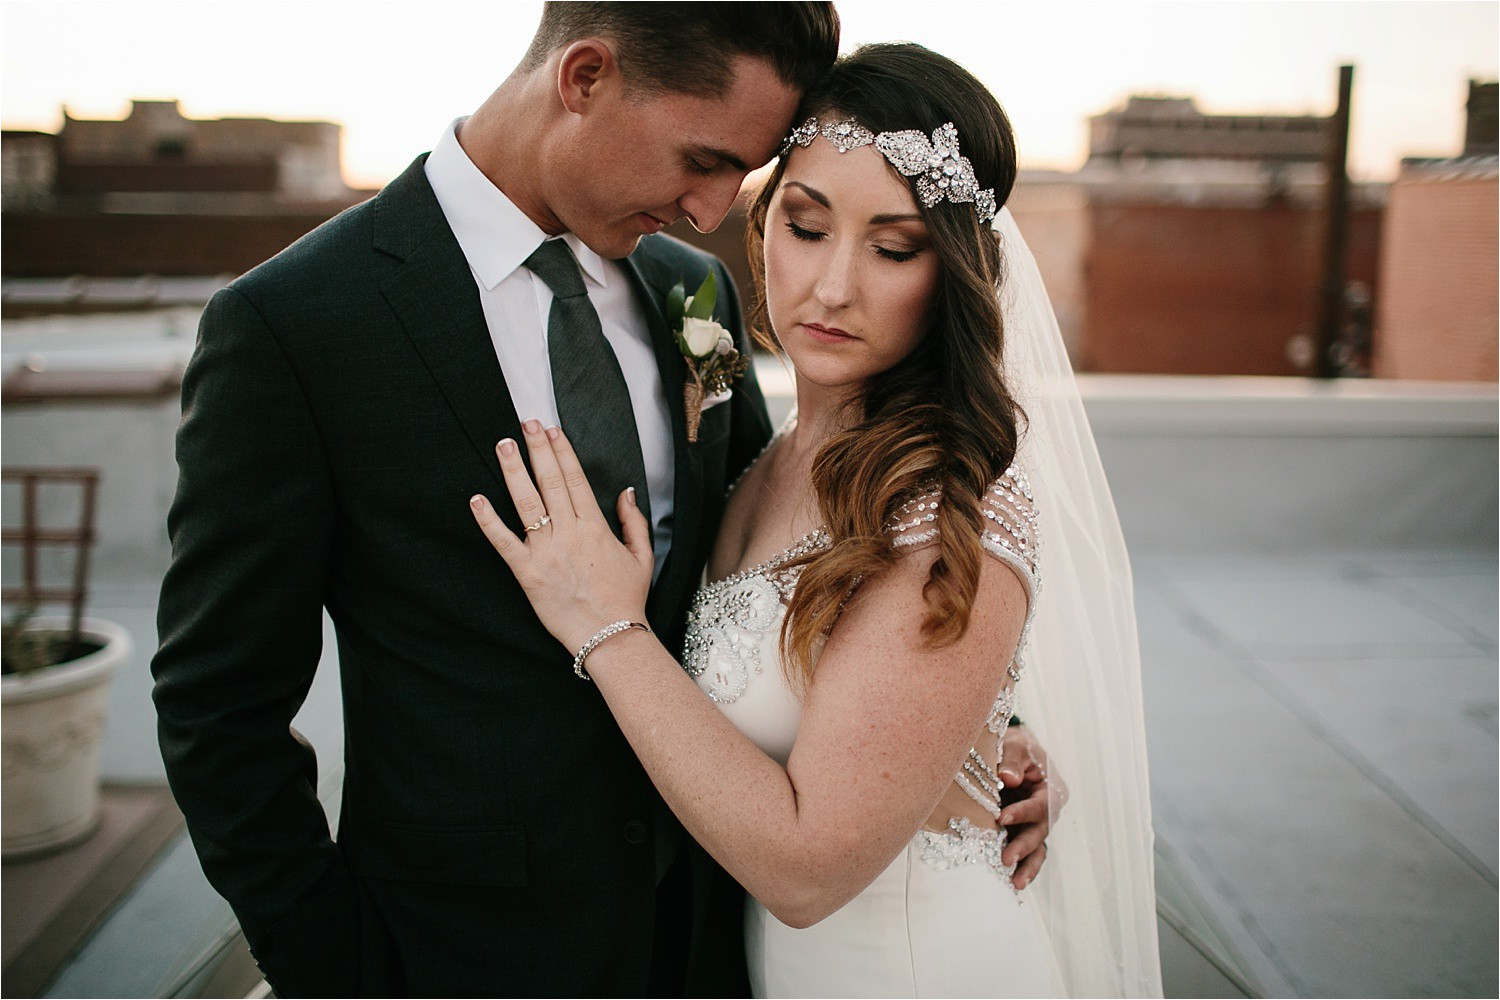 whittney-drew-__-an-intimate-wine-and-navy-wedding-in-an-industrial-venue-at-loft-123-in-paris-tx-by-north-texas-wedding-photographer-rachel-meagan-photography-_-080